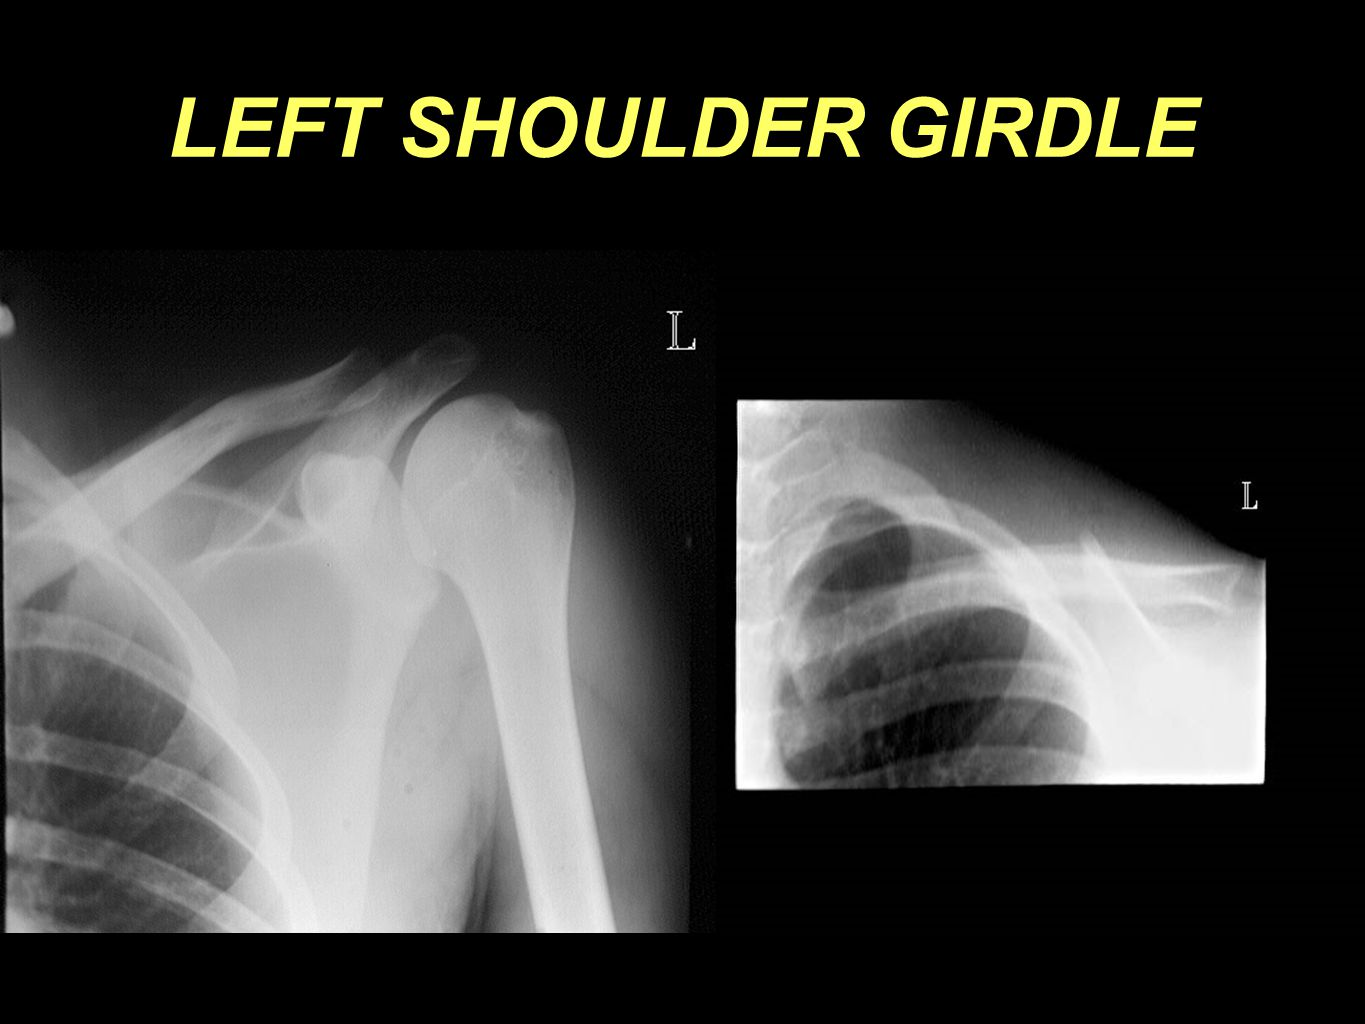 LEFT SHOULDER GIRDLE